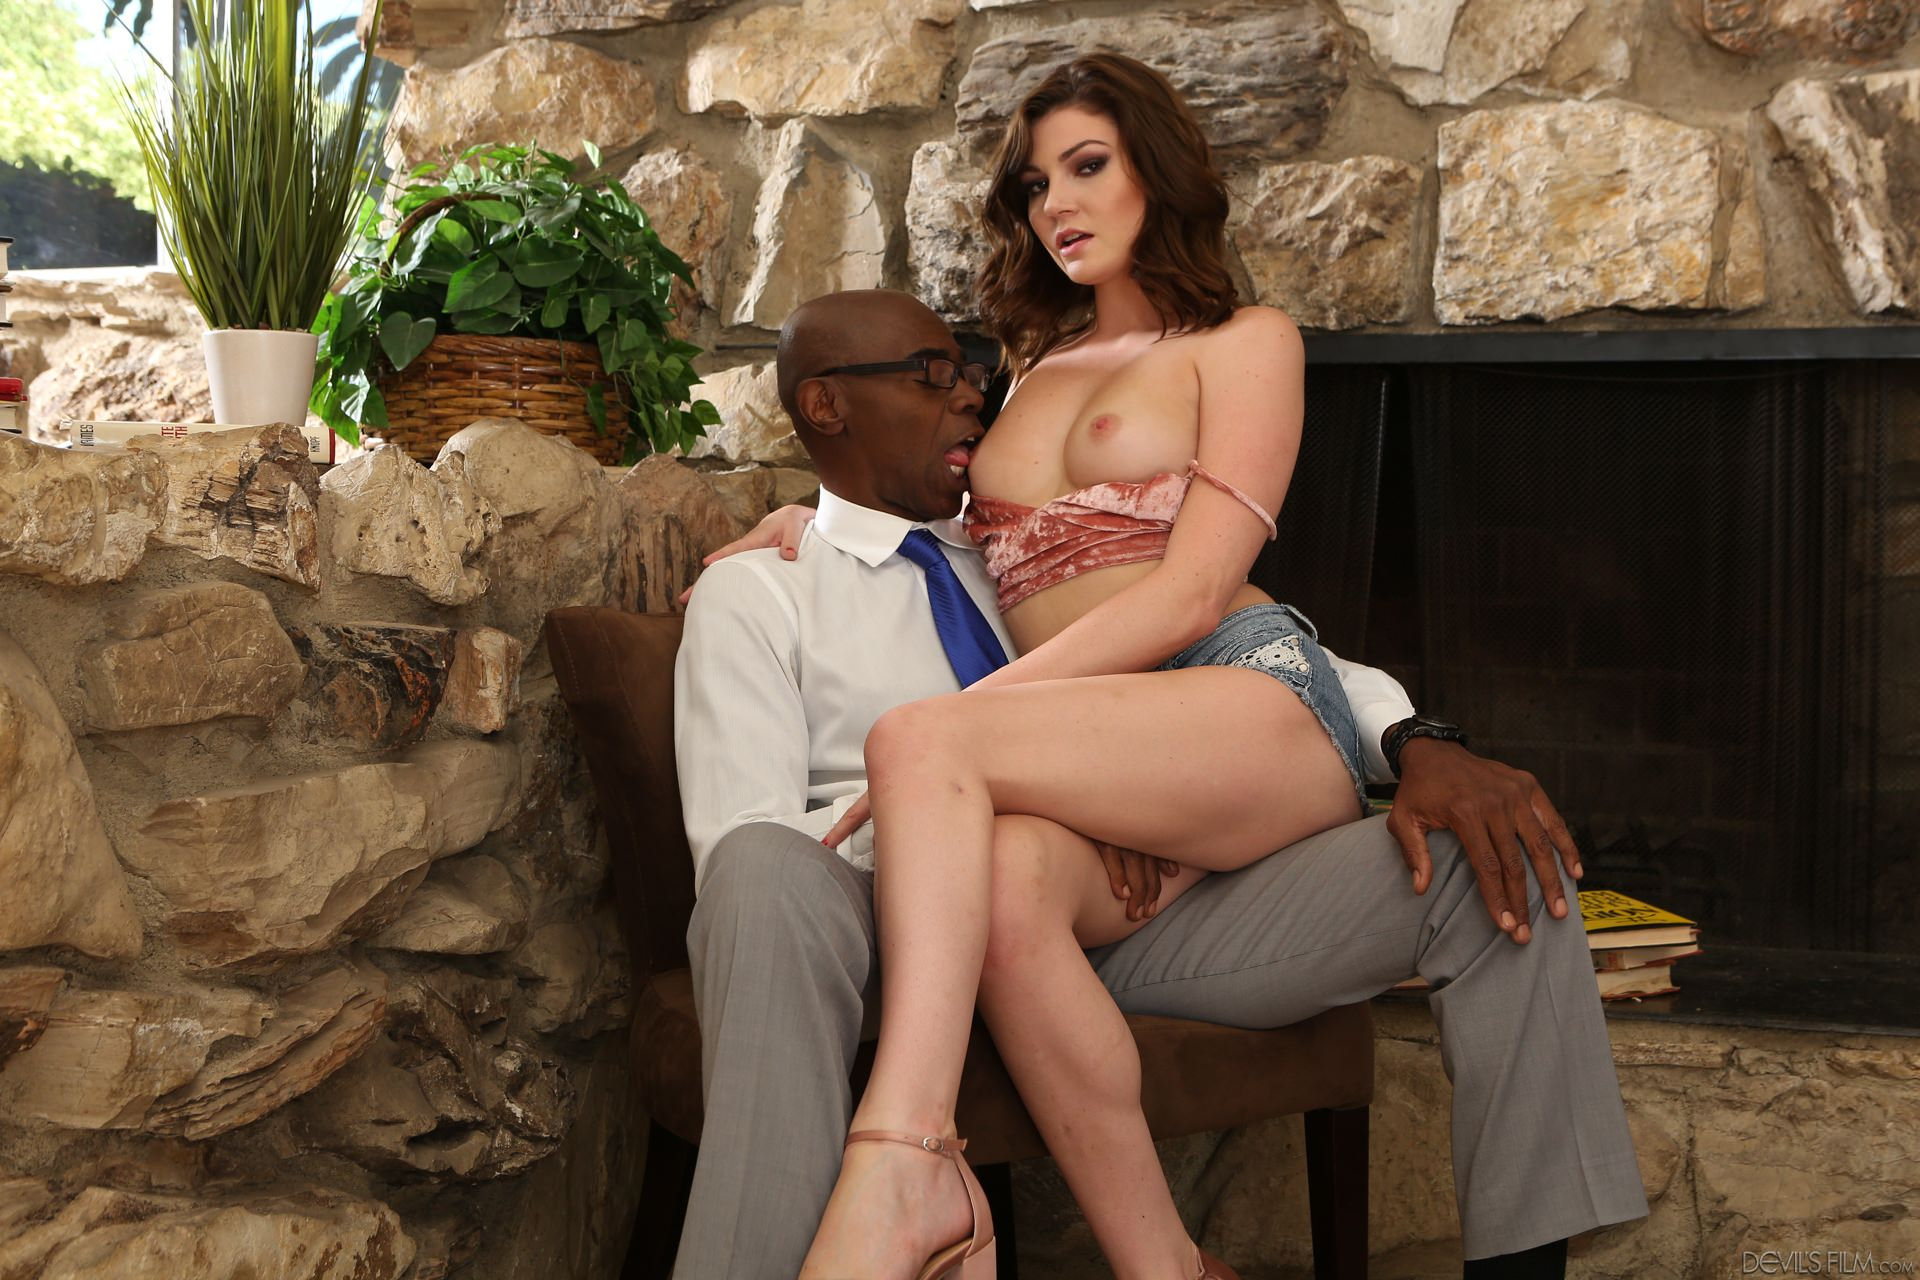 Devils Film 'My New Black Stepdaddy 22' starring Jessica Rex (photo 1)